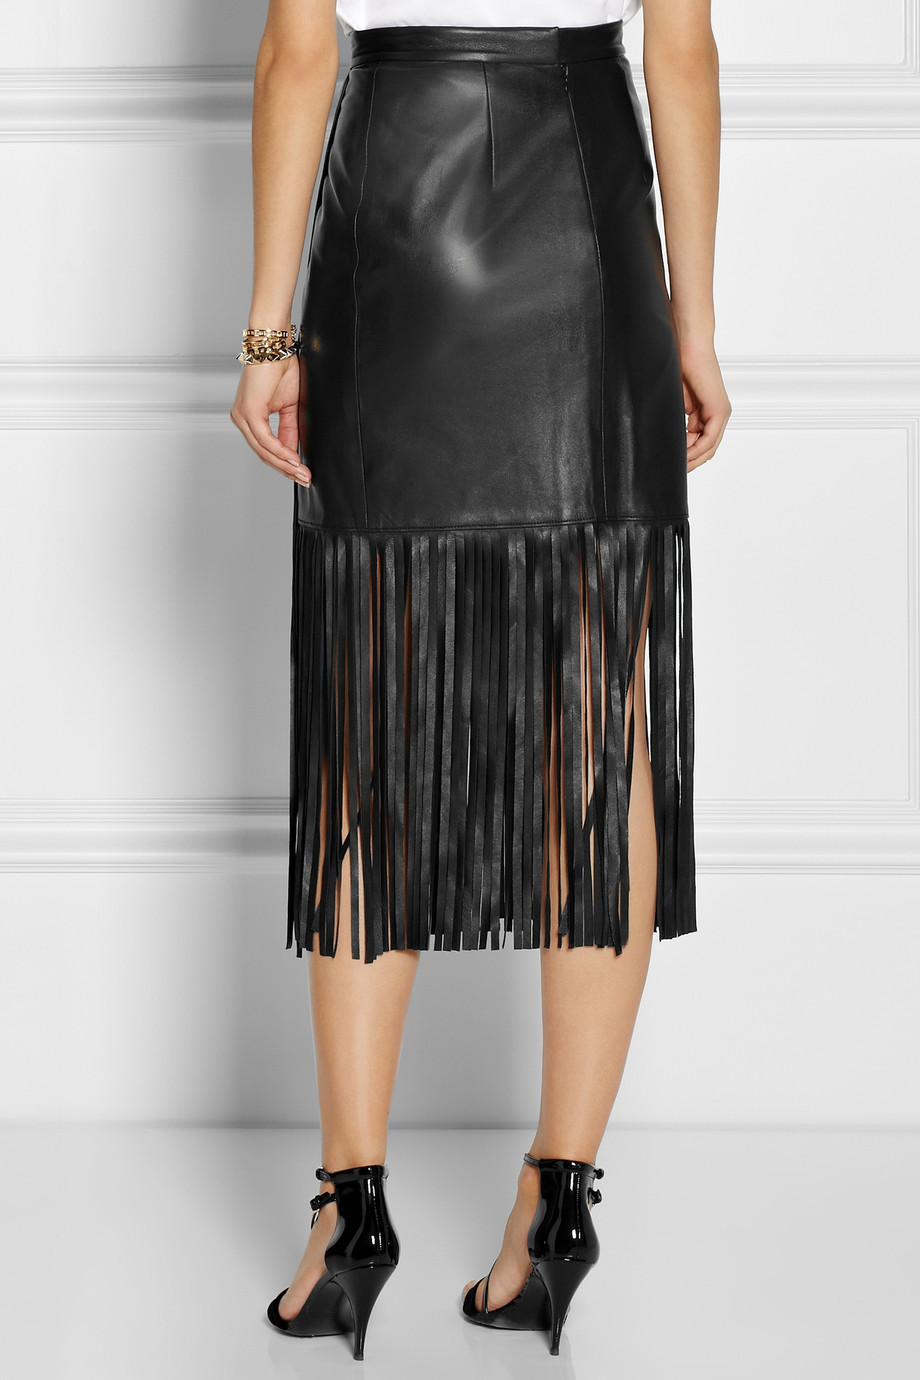 Black Leather Skirt With Fringe | Jill Dress